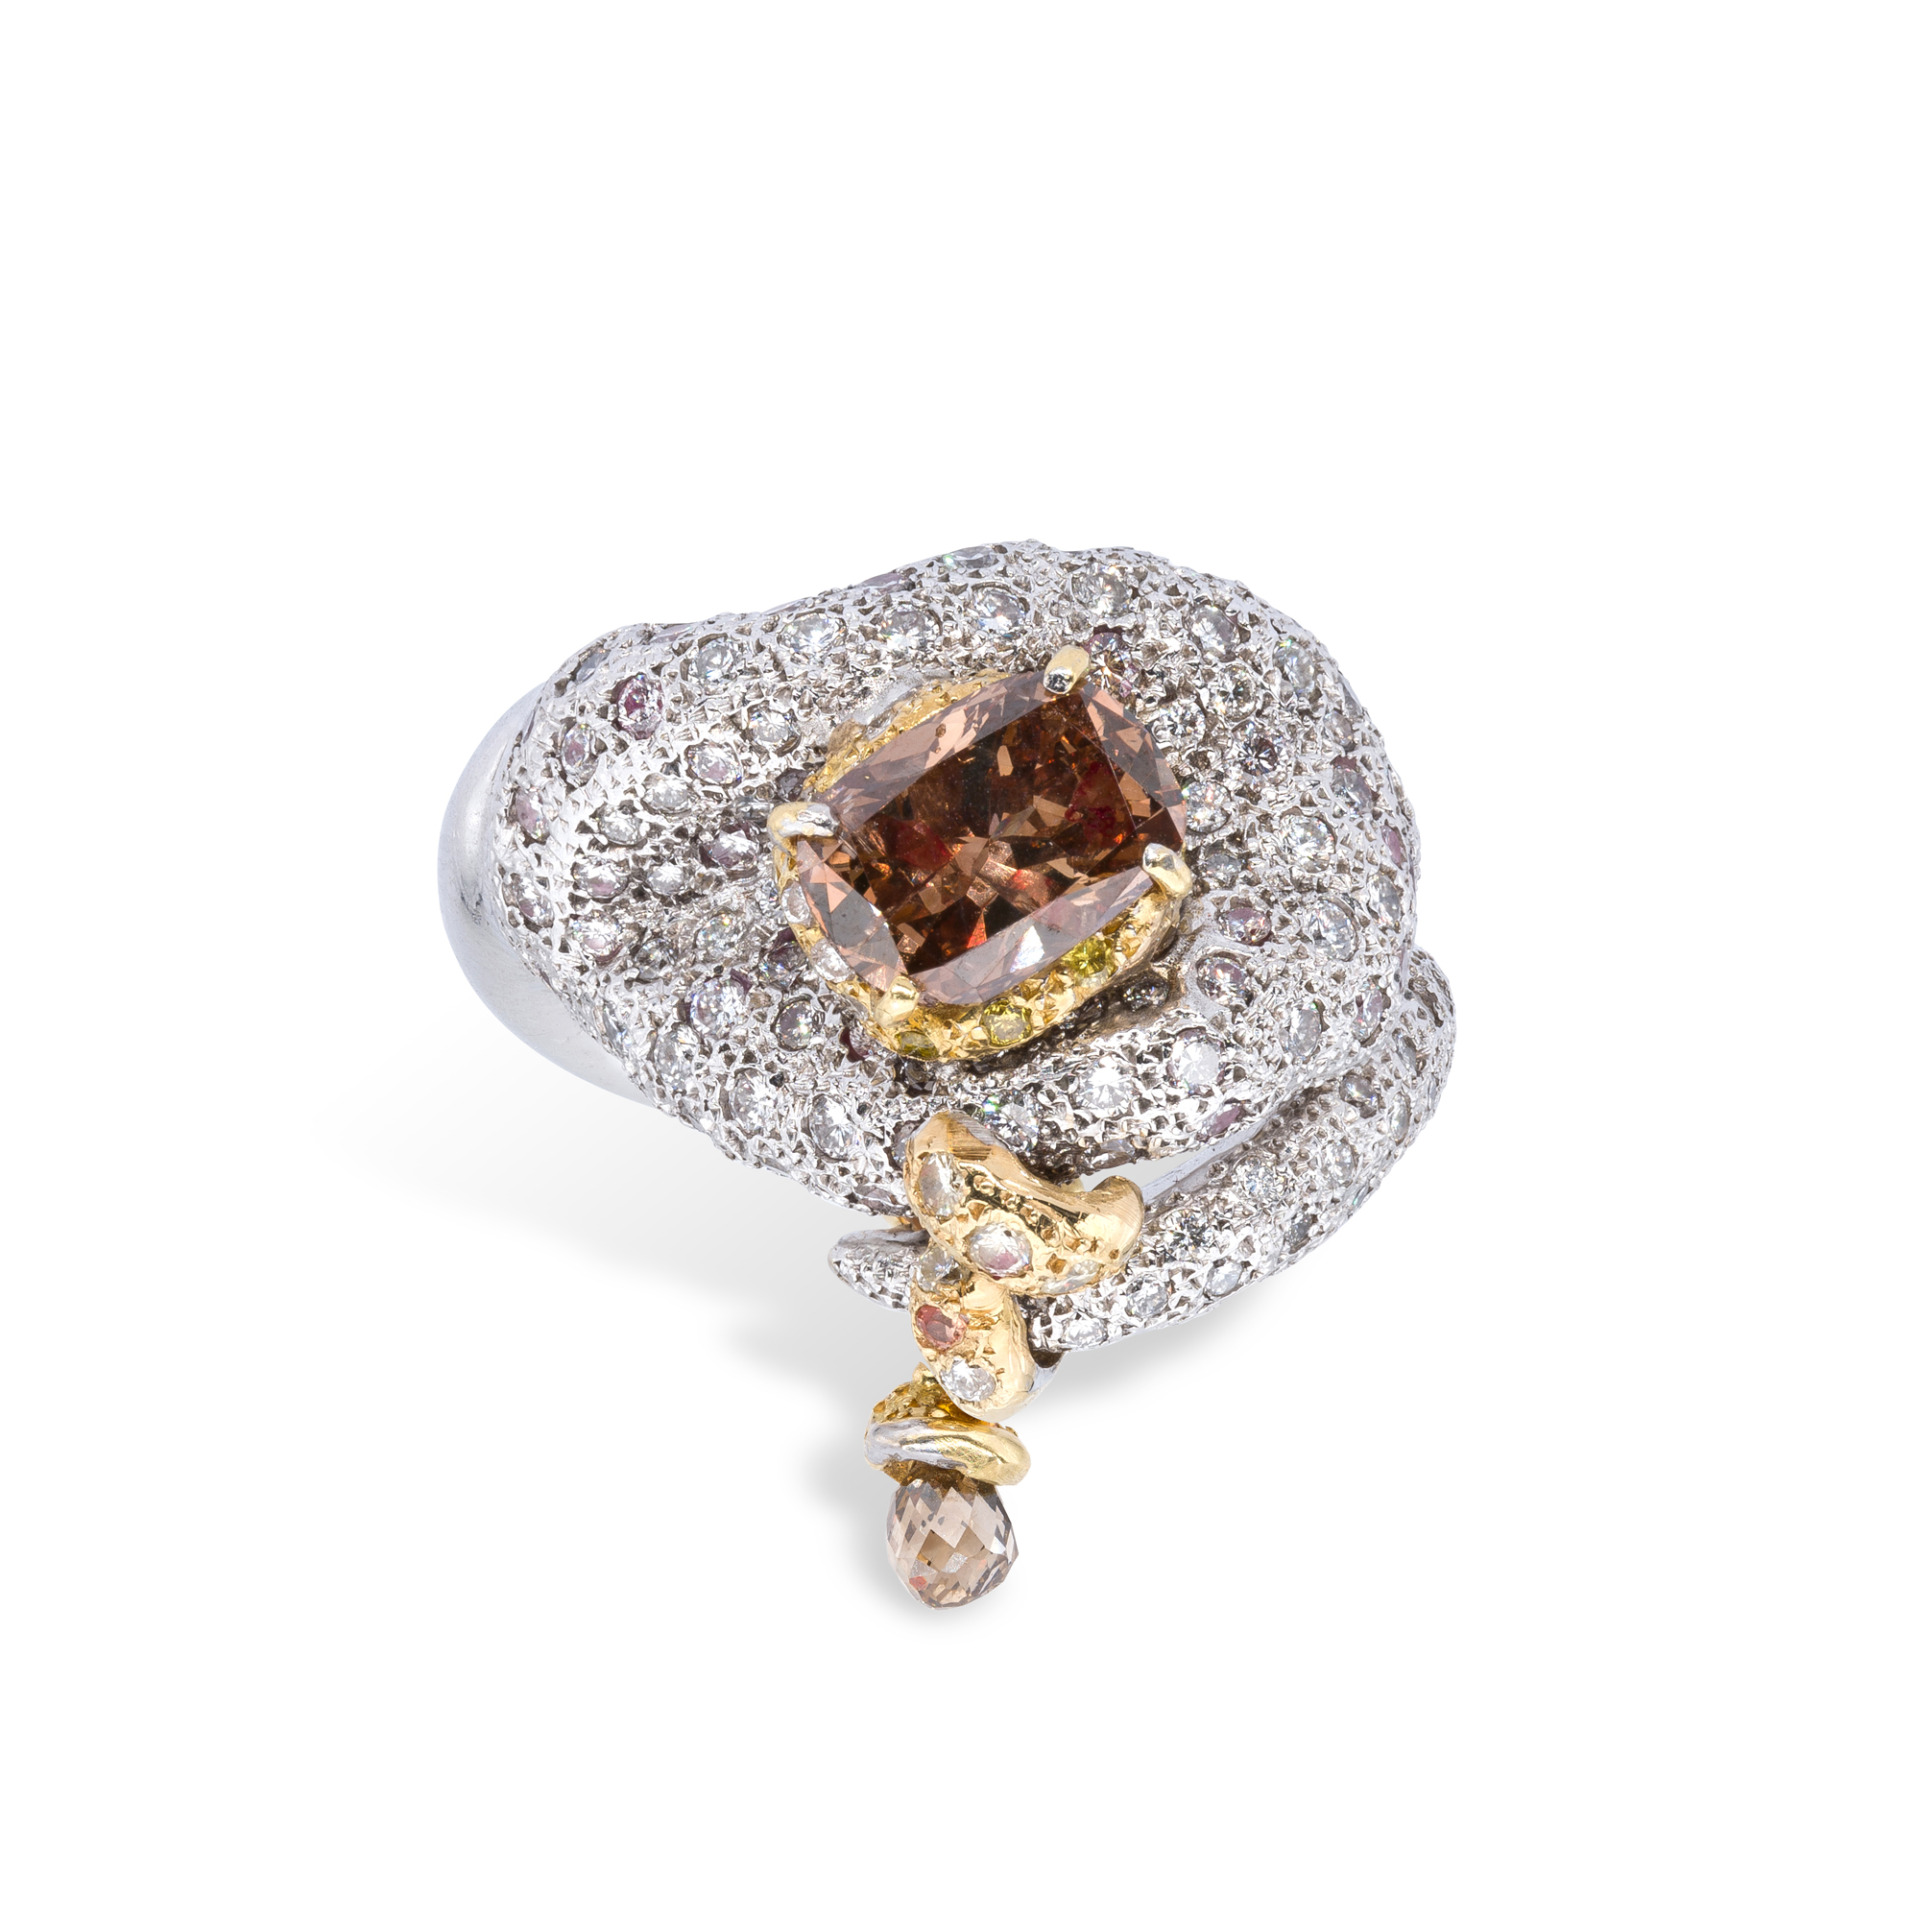 d'Avossa Ring in 18kt white gold with a Cognac Central Diamond and white Diamonds